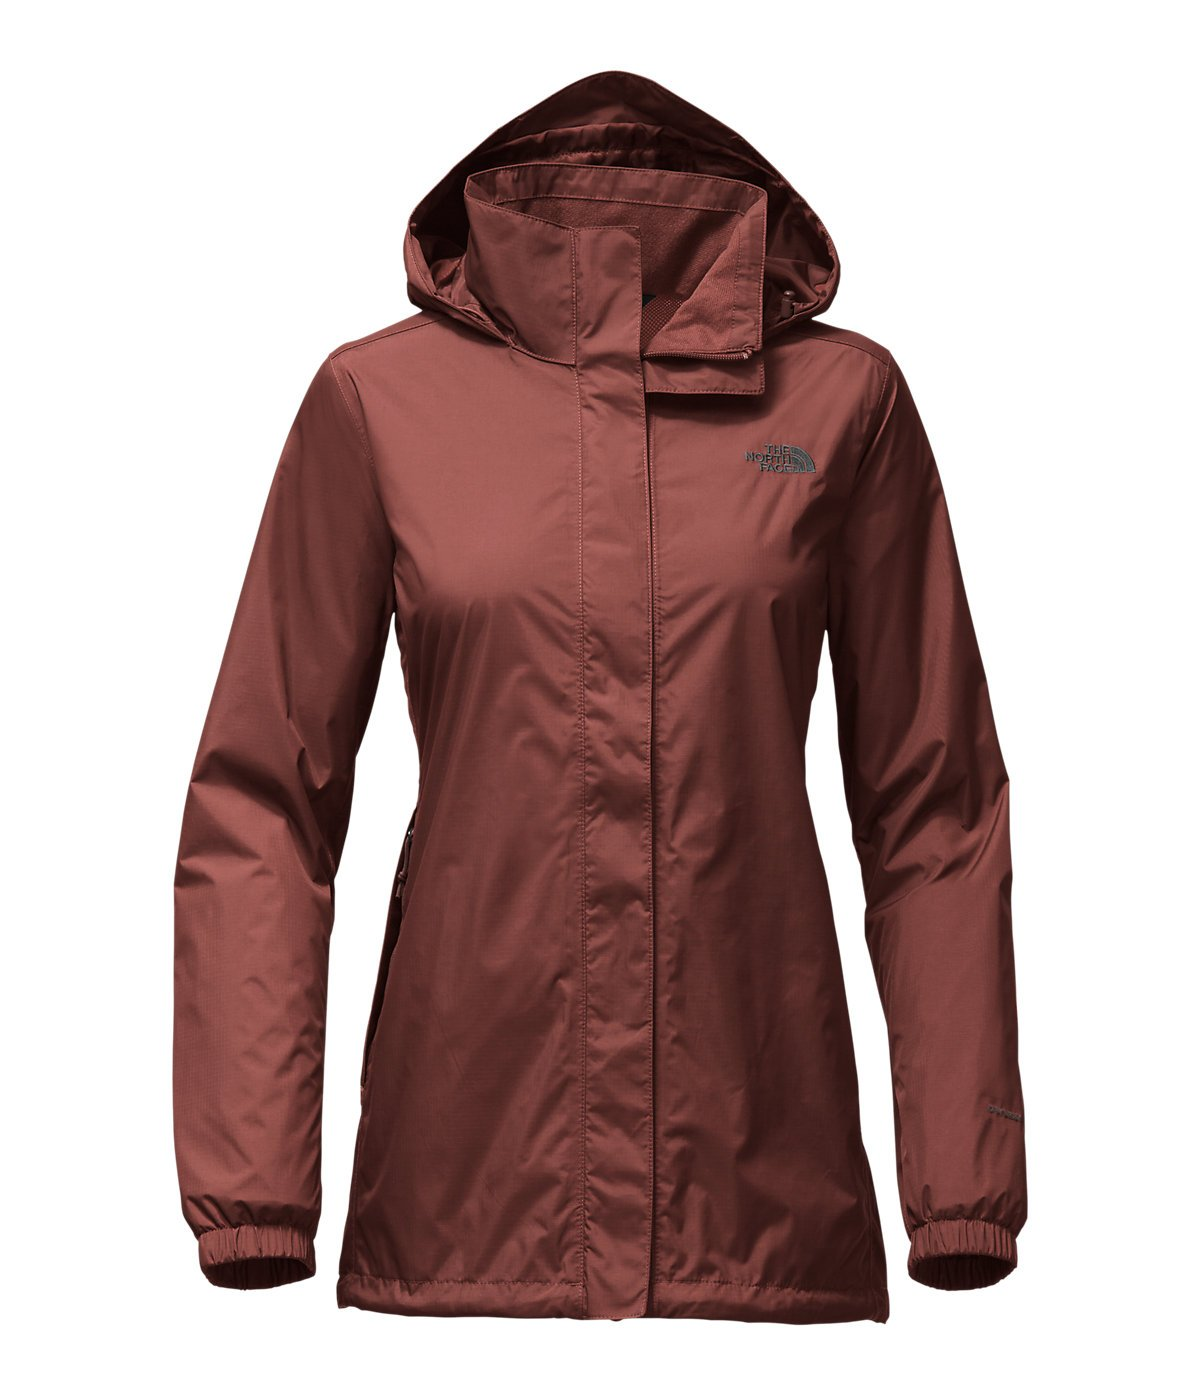 The North Face Women's Women's Resolve Parka - Sequoia Red - XL (Past Season)